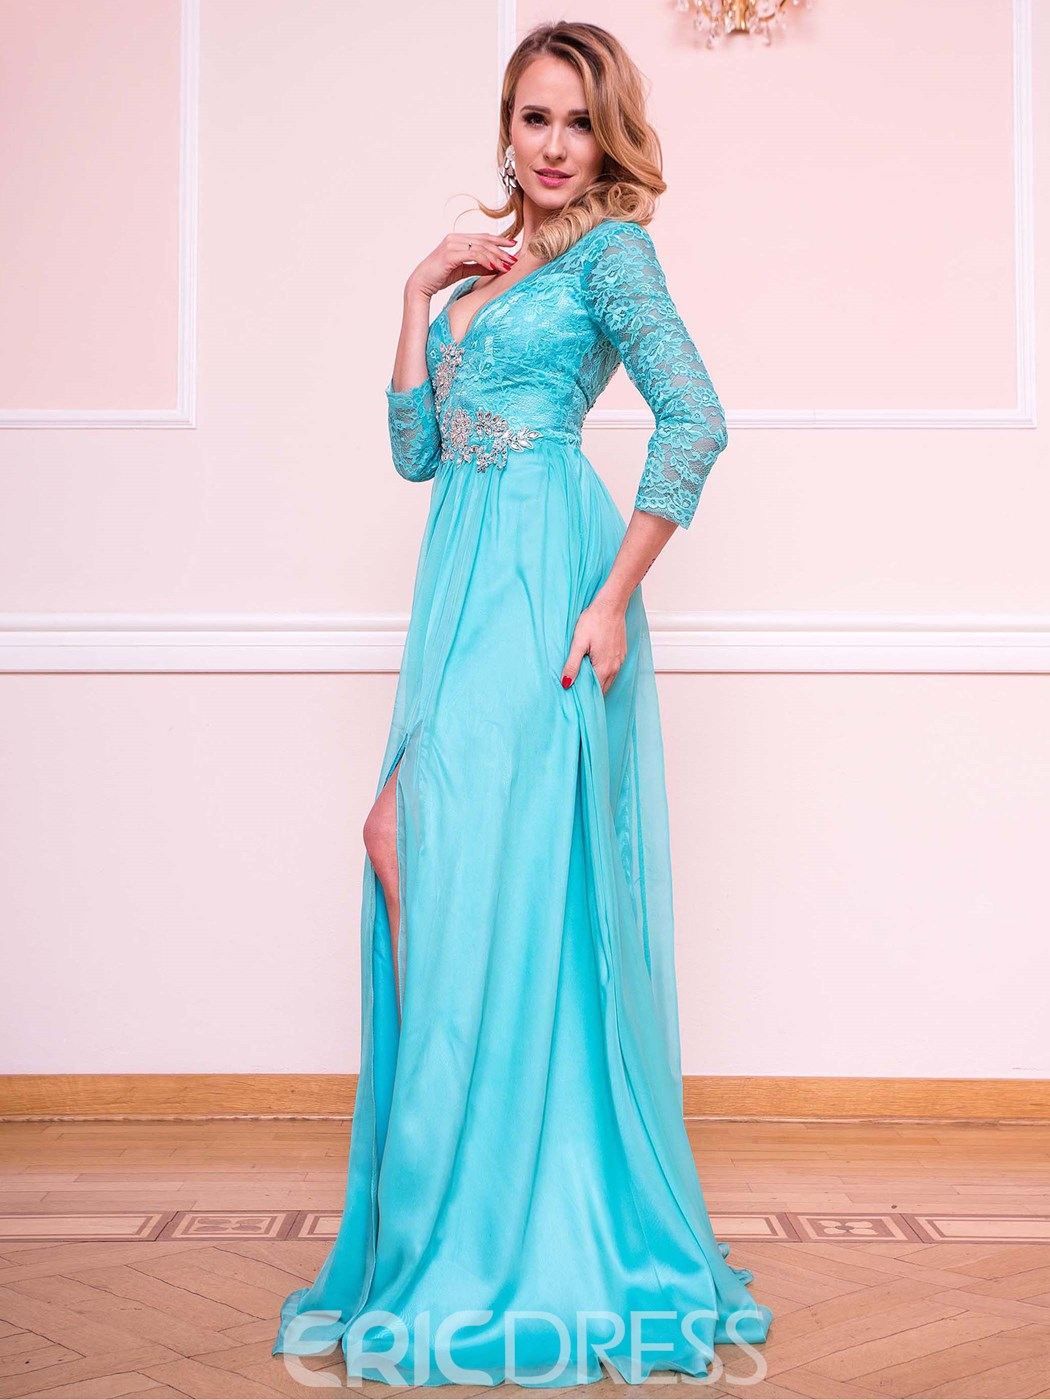 Ericdress A Line 3/4 Sleeve Empire Side Slit Beaded Lace Evening Dress